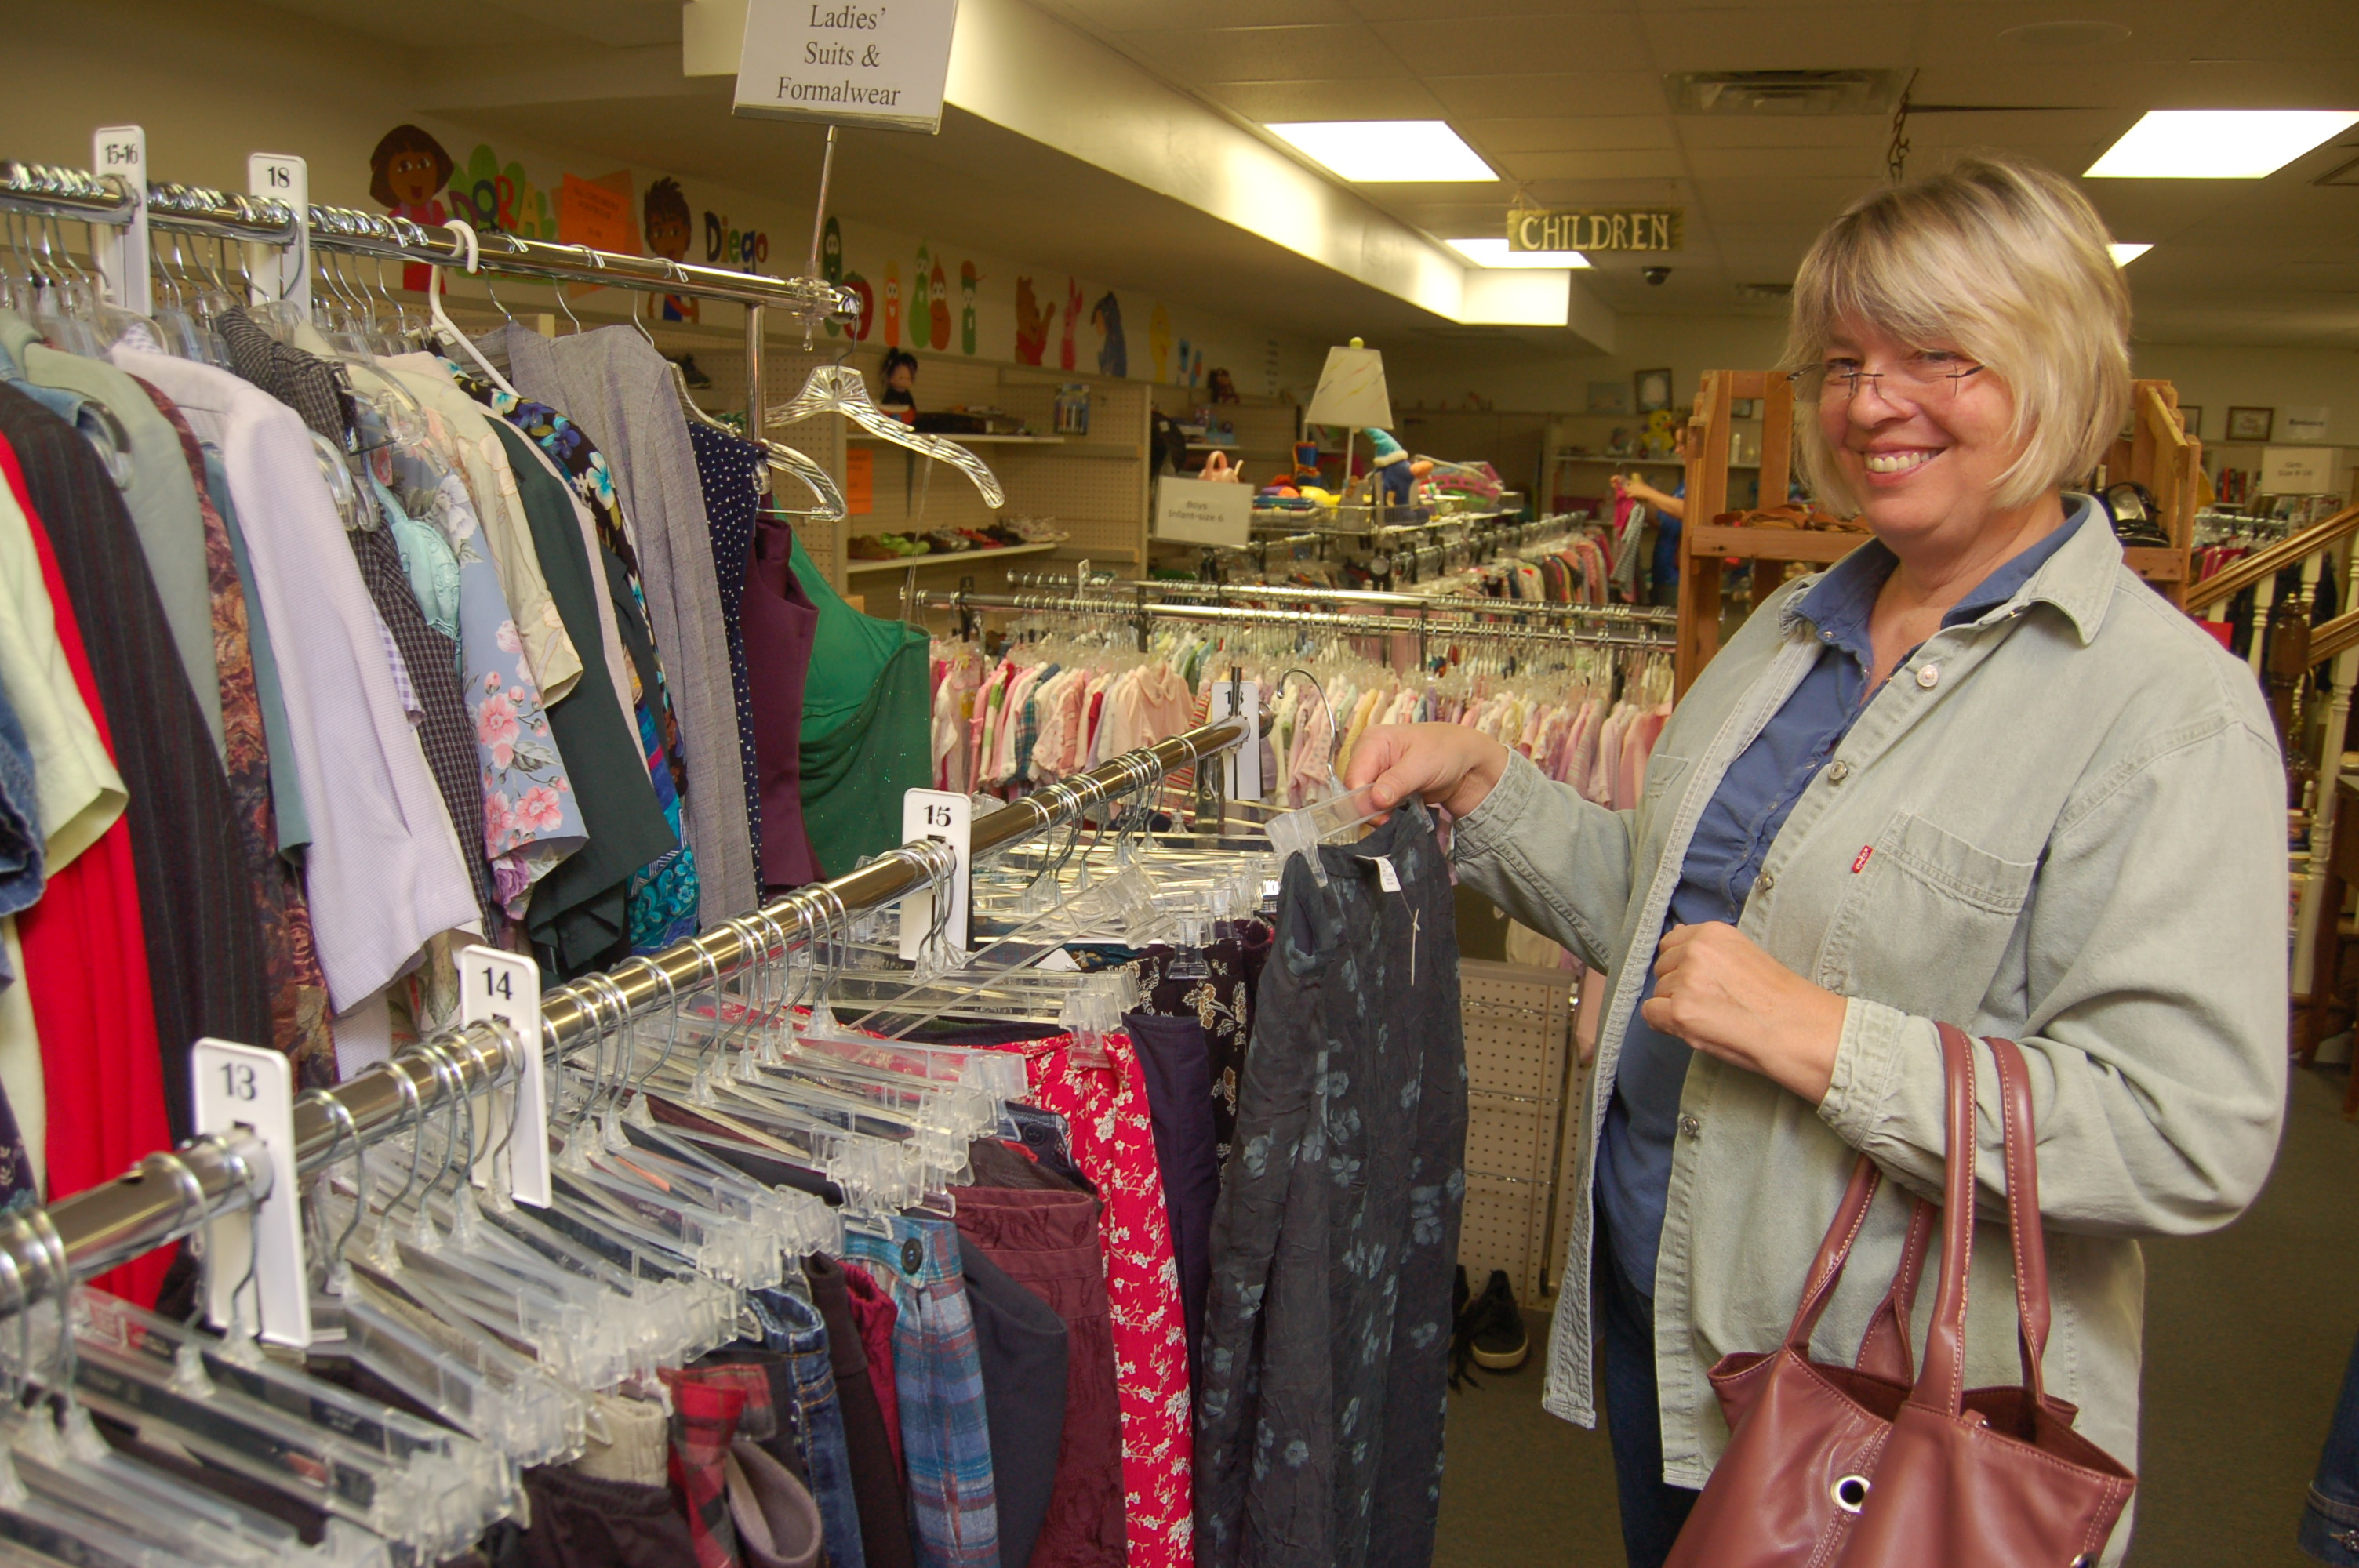 Thrift store shopper by Bruce Stambaugh